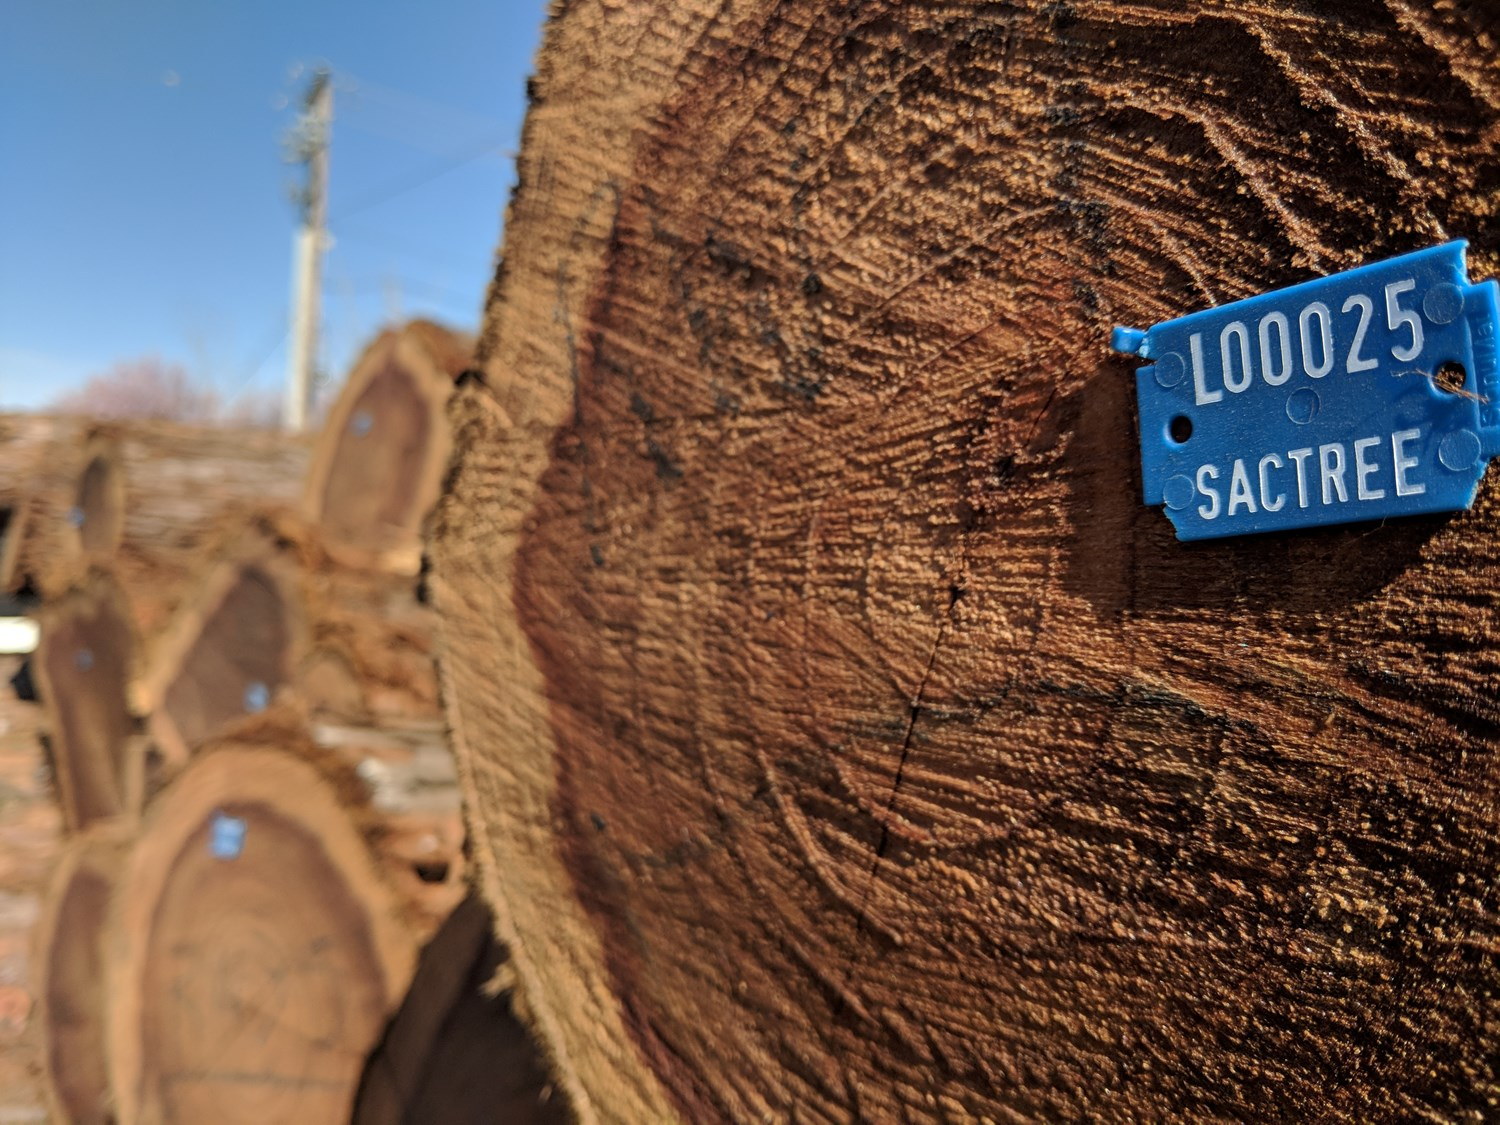 Sac Tree Foundation's Urban Wood Rescue program and Hacker Lab